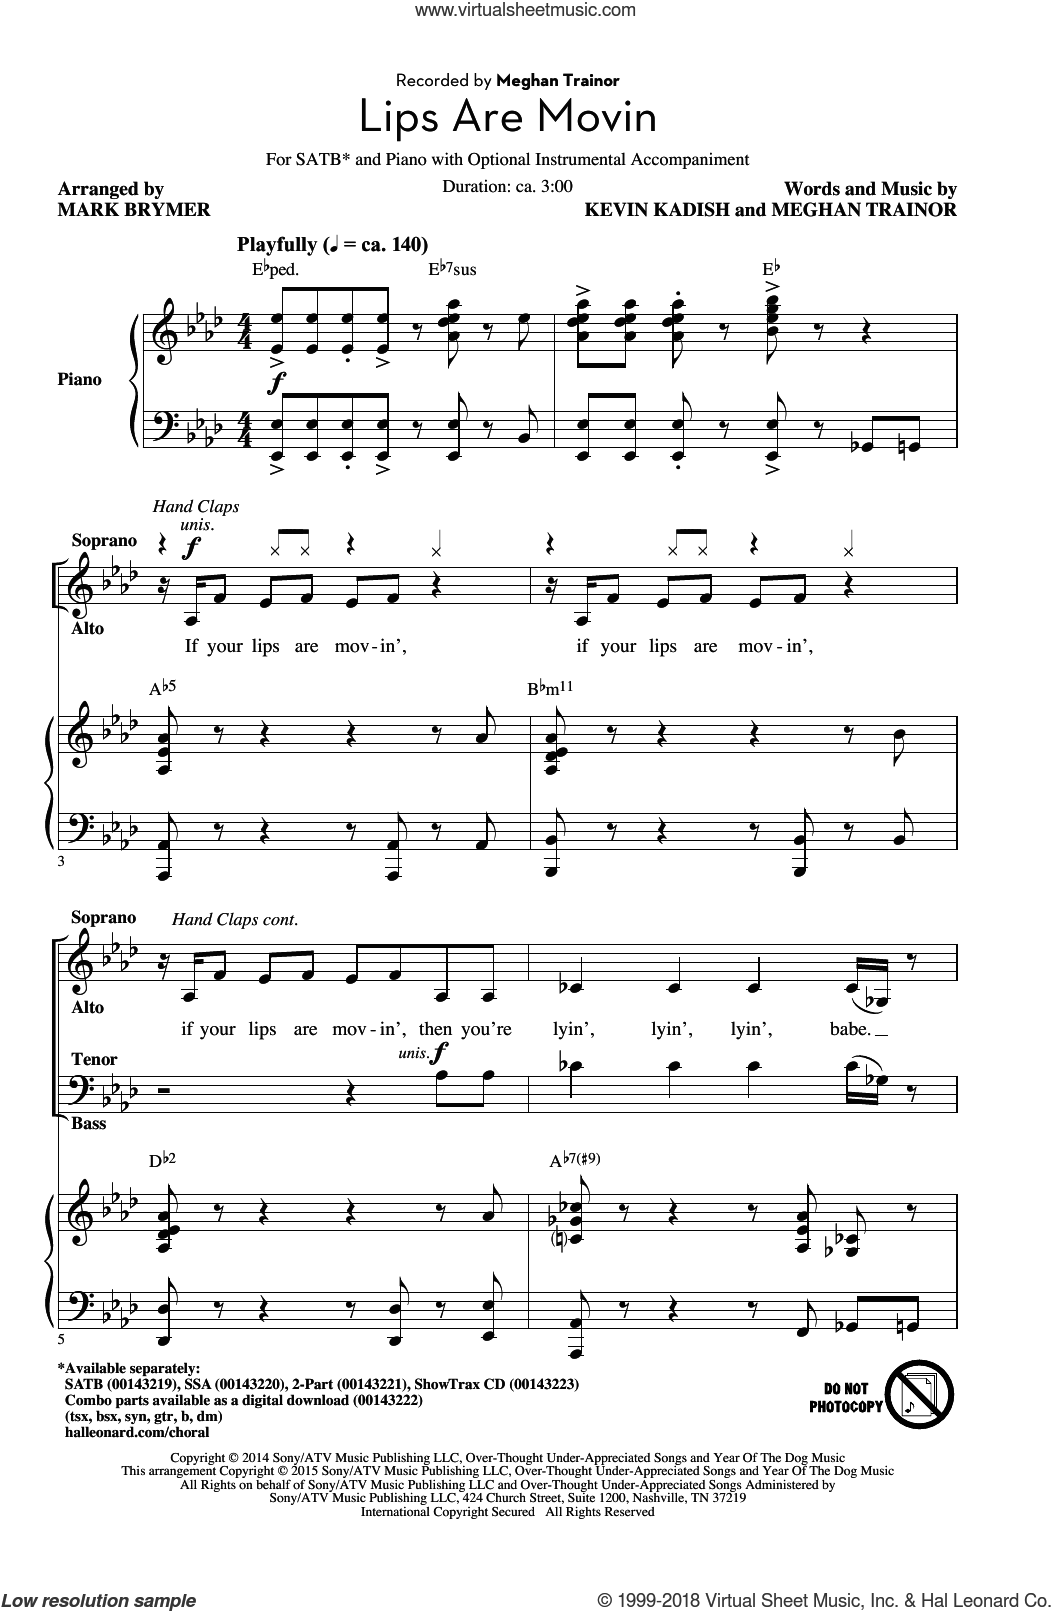 Lips Are Movin sheet music for choir (SATB) by Mark Brymer, Kevin Kadish and Meghan Trainor. Score Image Preview.